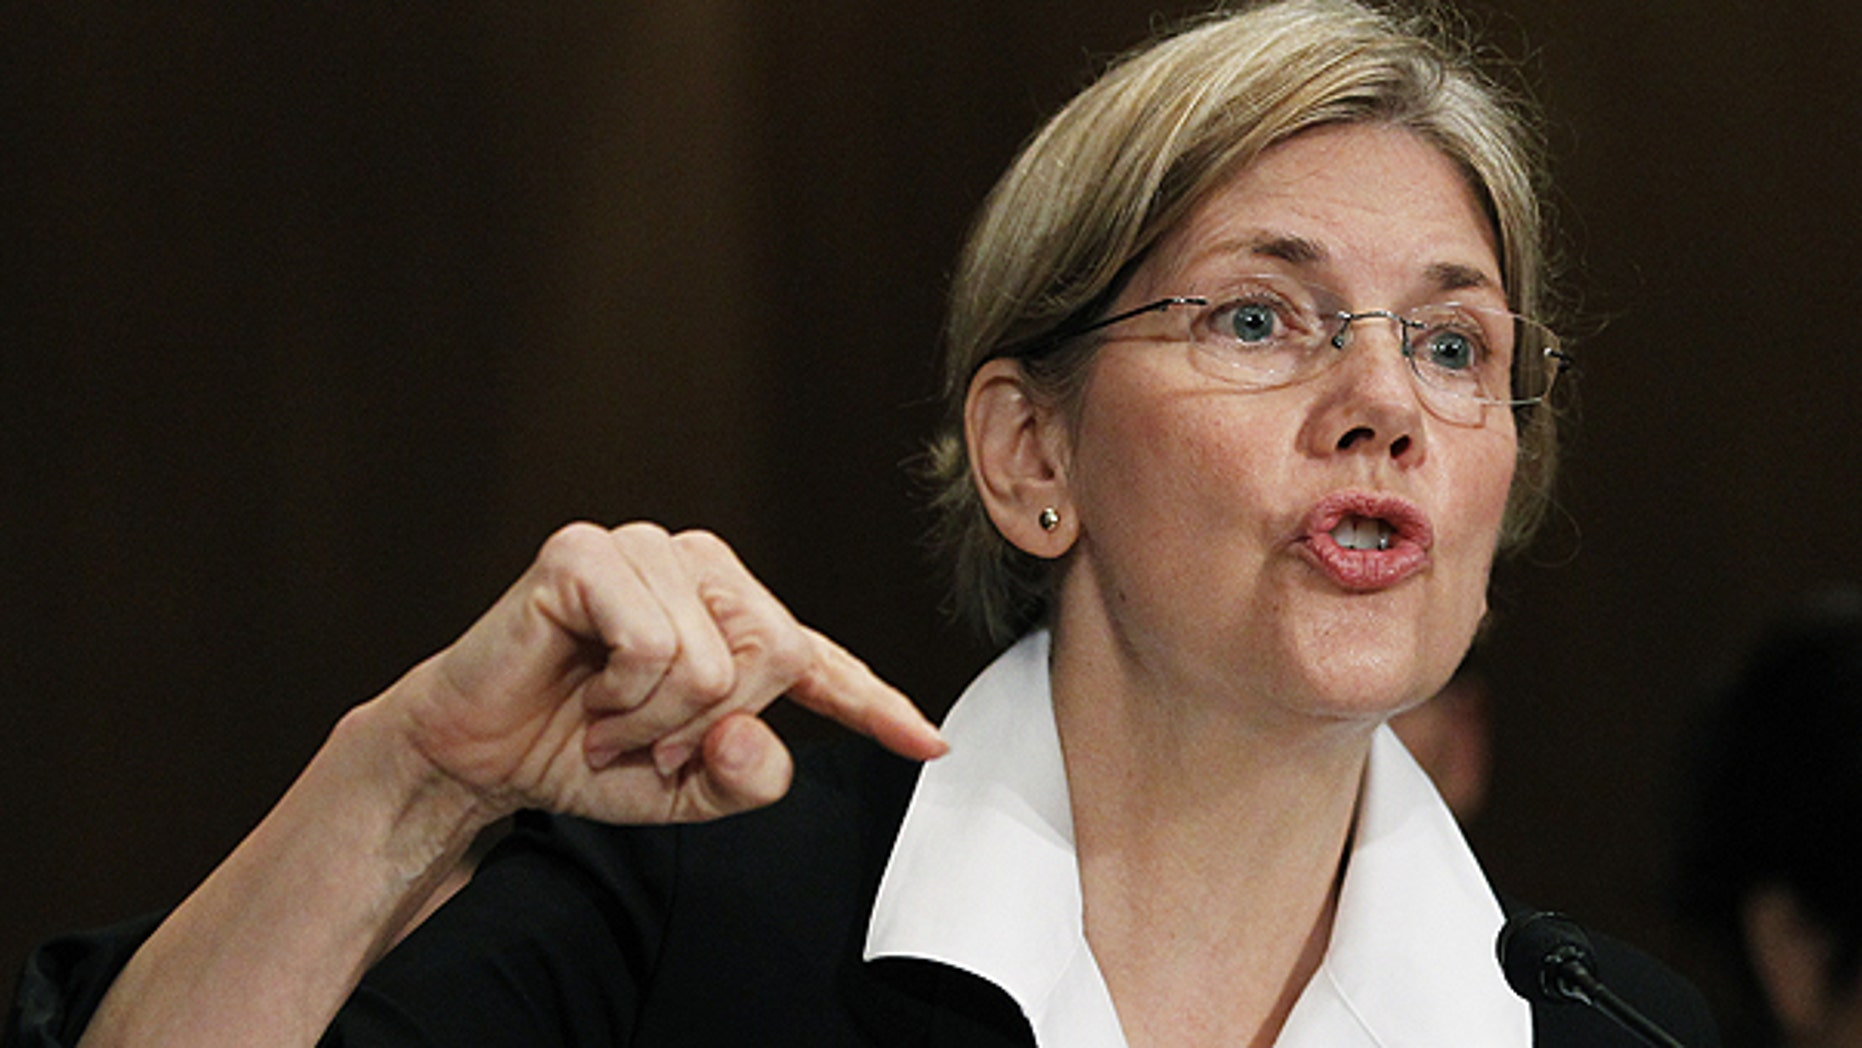 FILE: Republicans have said they want to prevent President Obama from recess appointing Elizabeth Warren, seen here at a Senate Finance Committee hearing in July 2010, to head the Consumer Financial Protection Bureau.